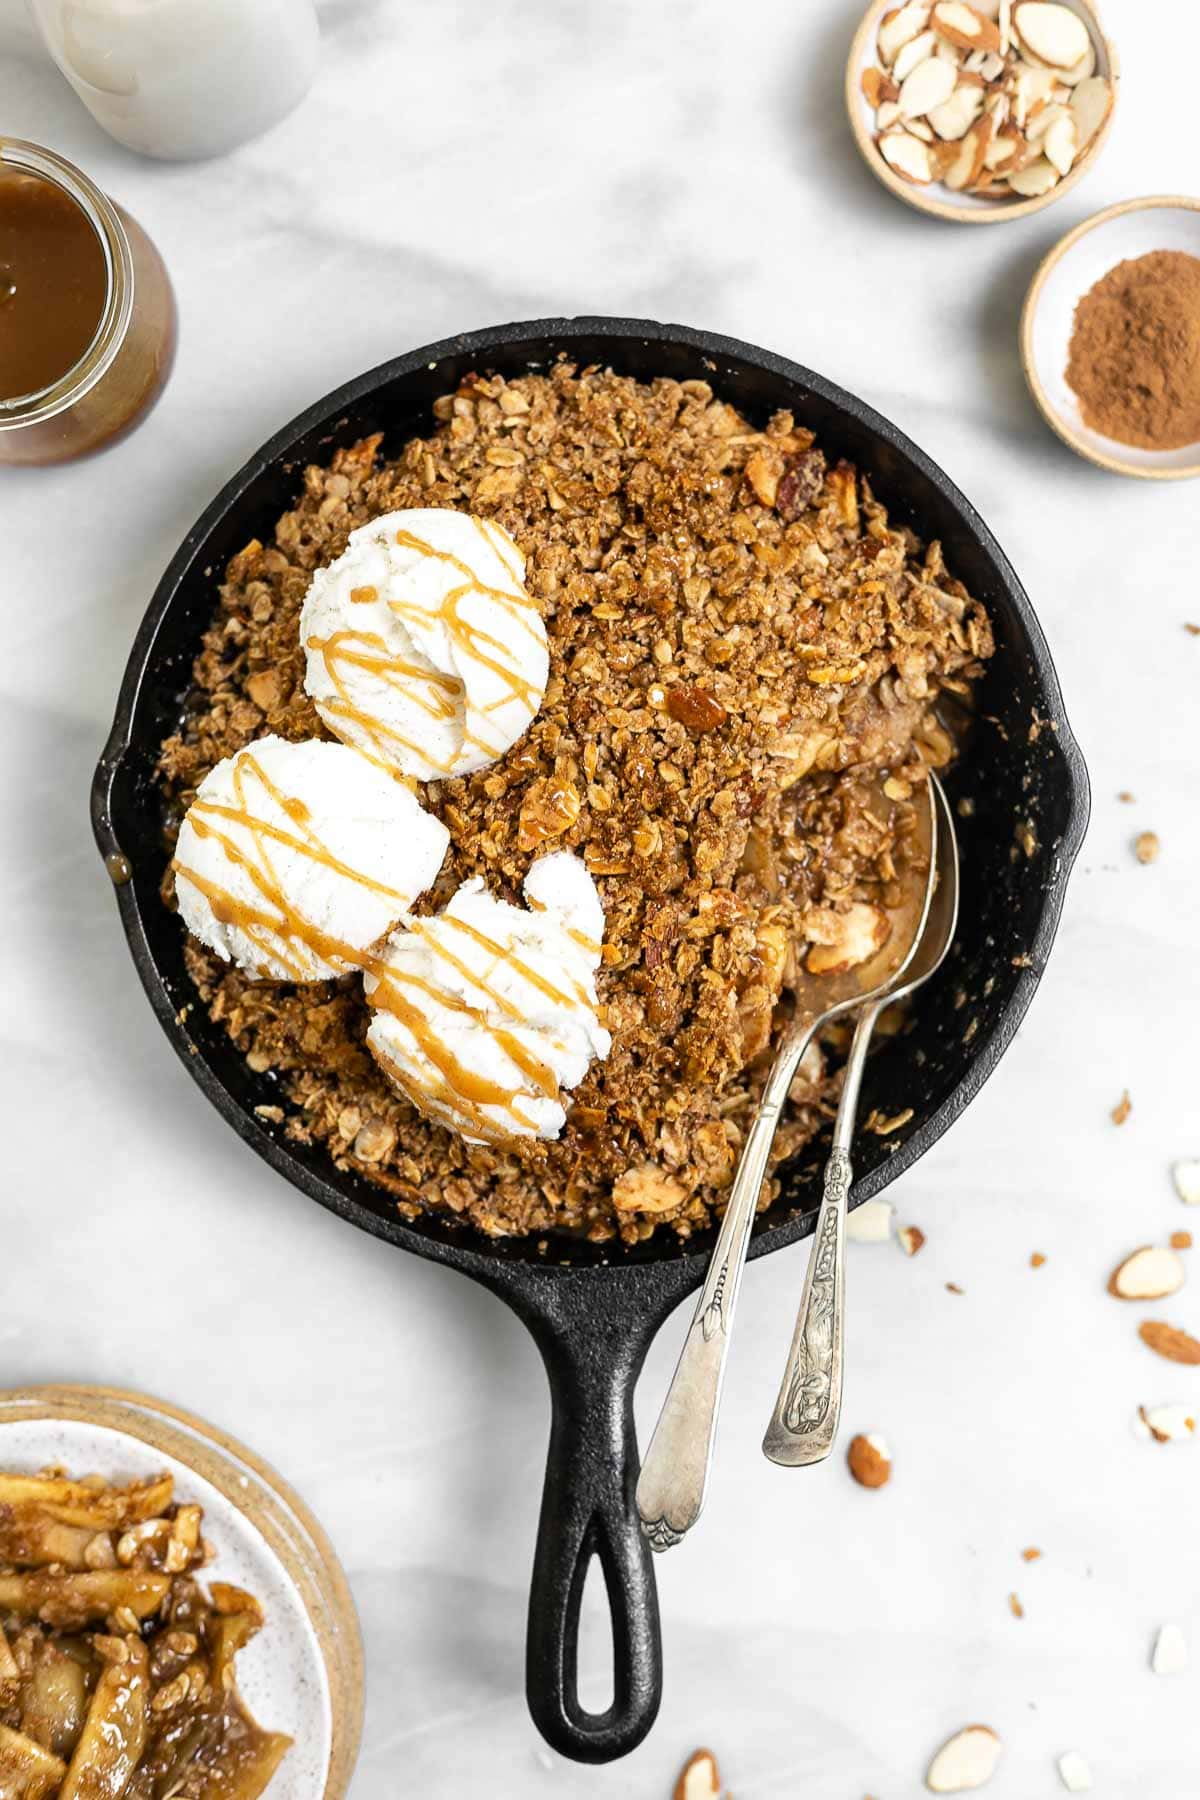 Apple crisp in a cast iron skillet with three scoops of ice cream.